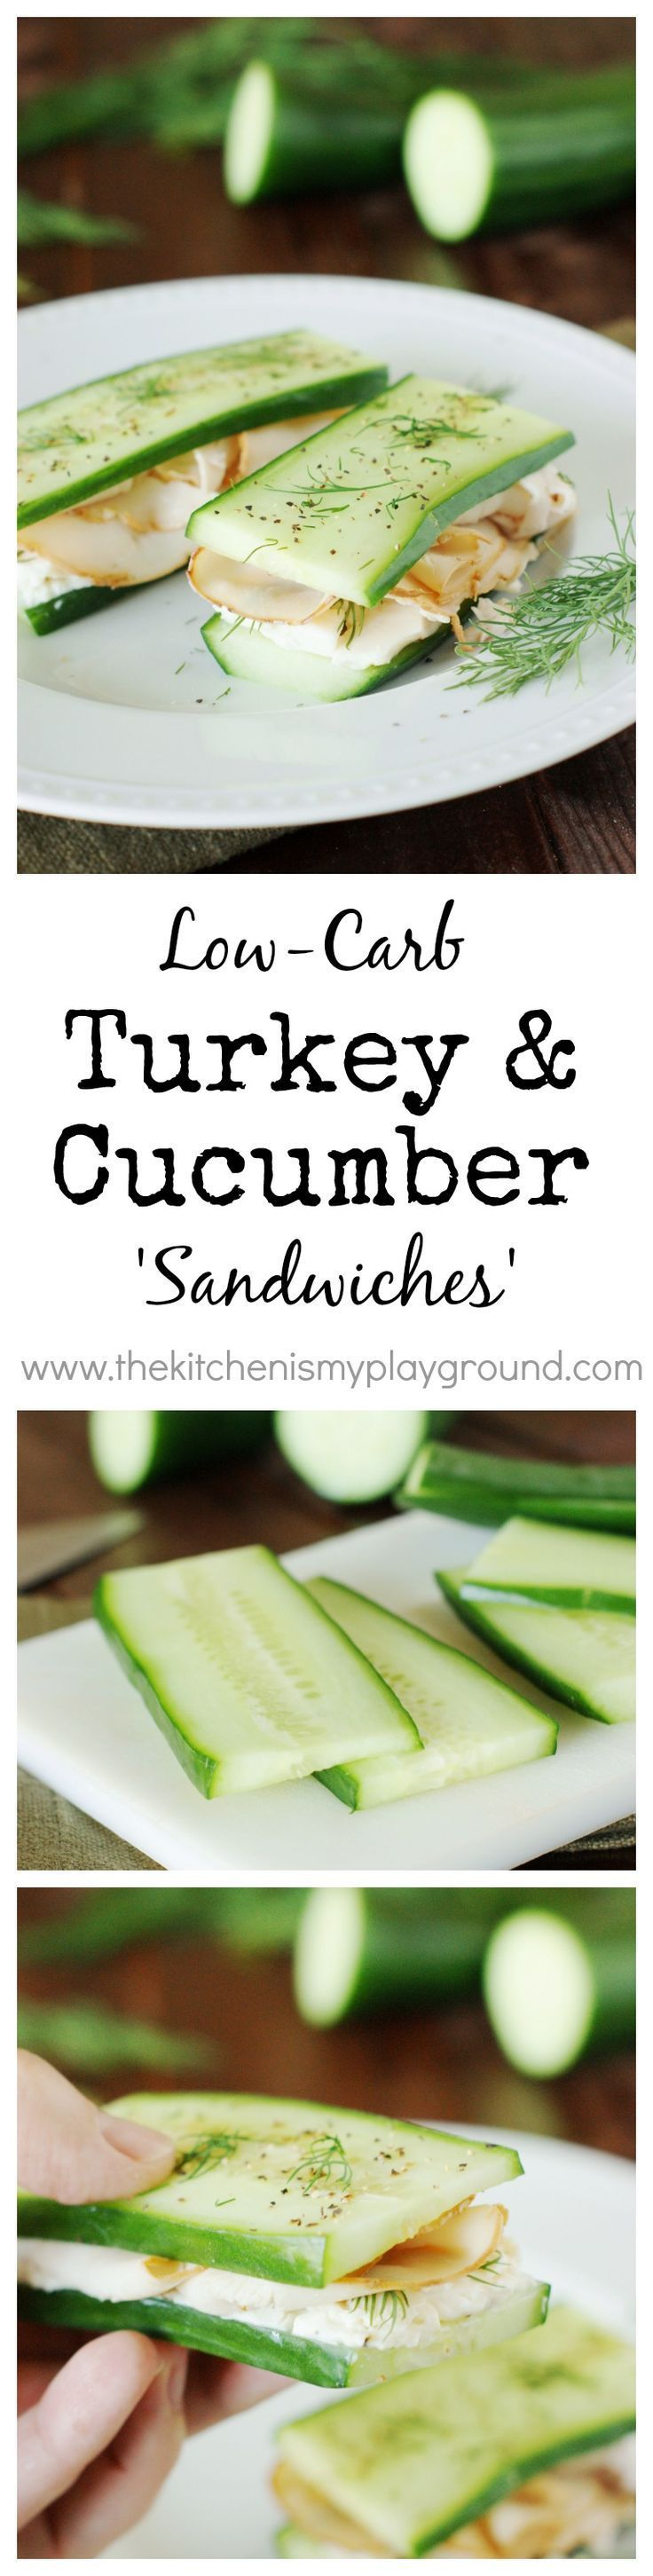 Low-Carb Smoked Turkey 'Sandwiches' ~ a GREAT low-carb lunch or snack option! www.thekitchenism...